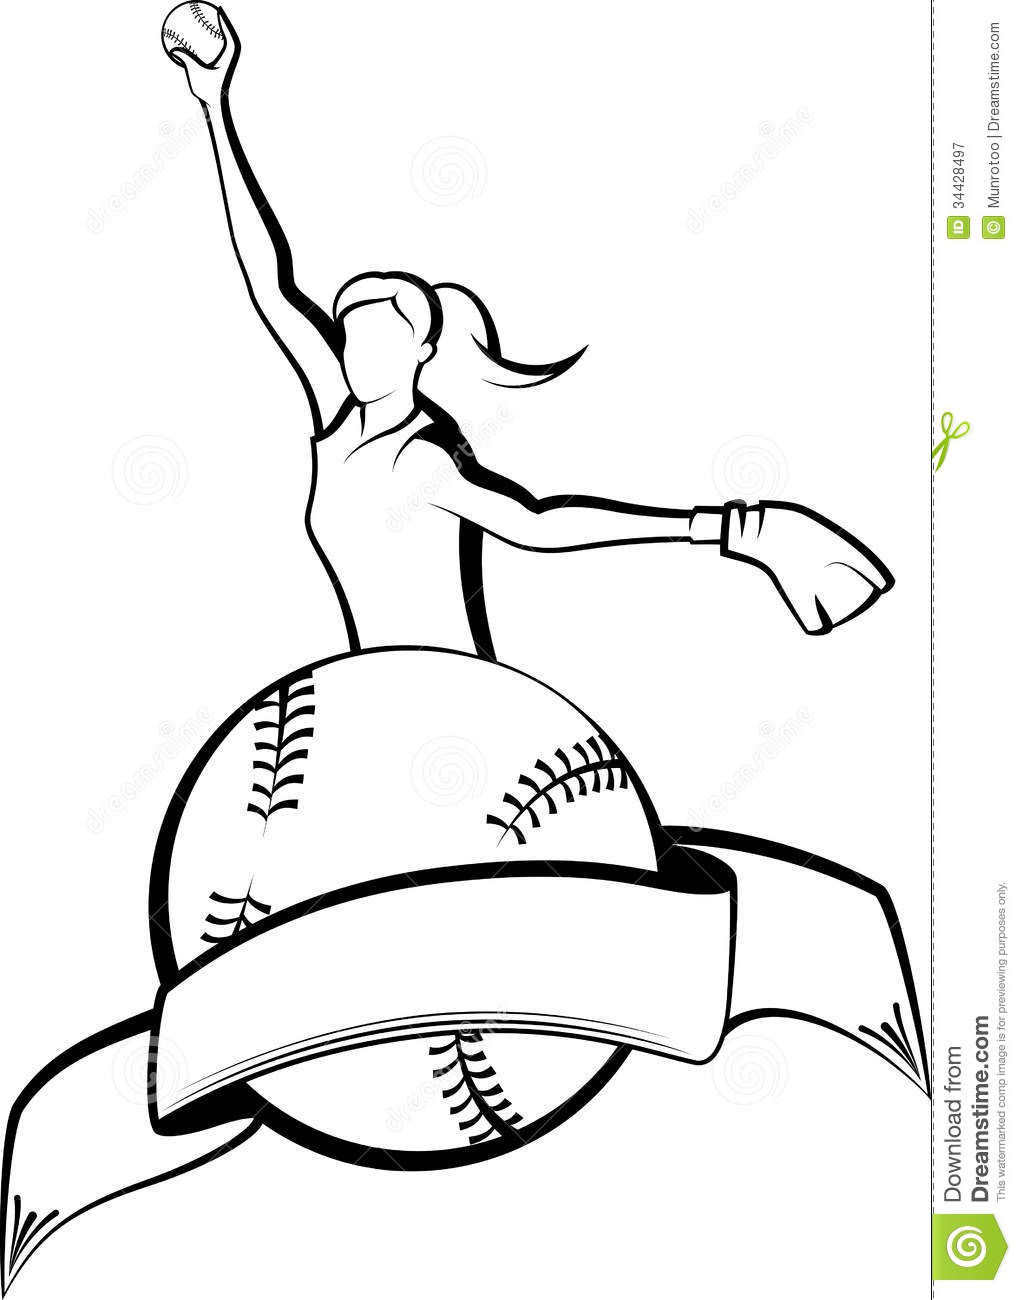 Softball Pitcher With Ball amp Banner Royalty Free Stock